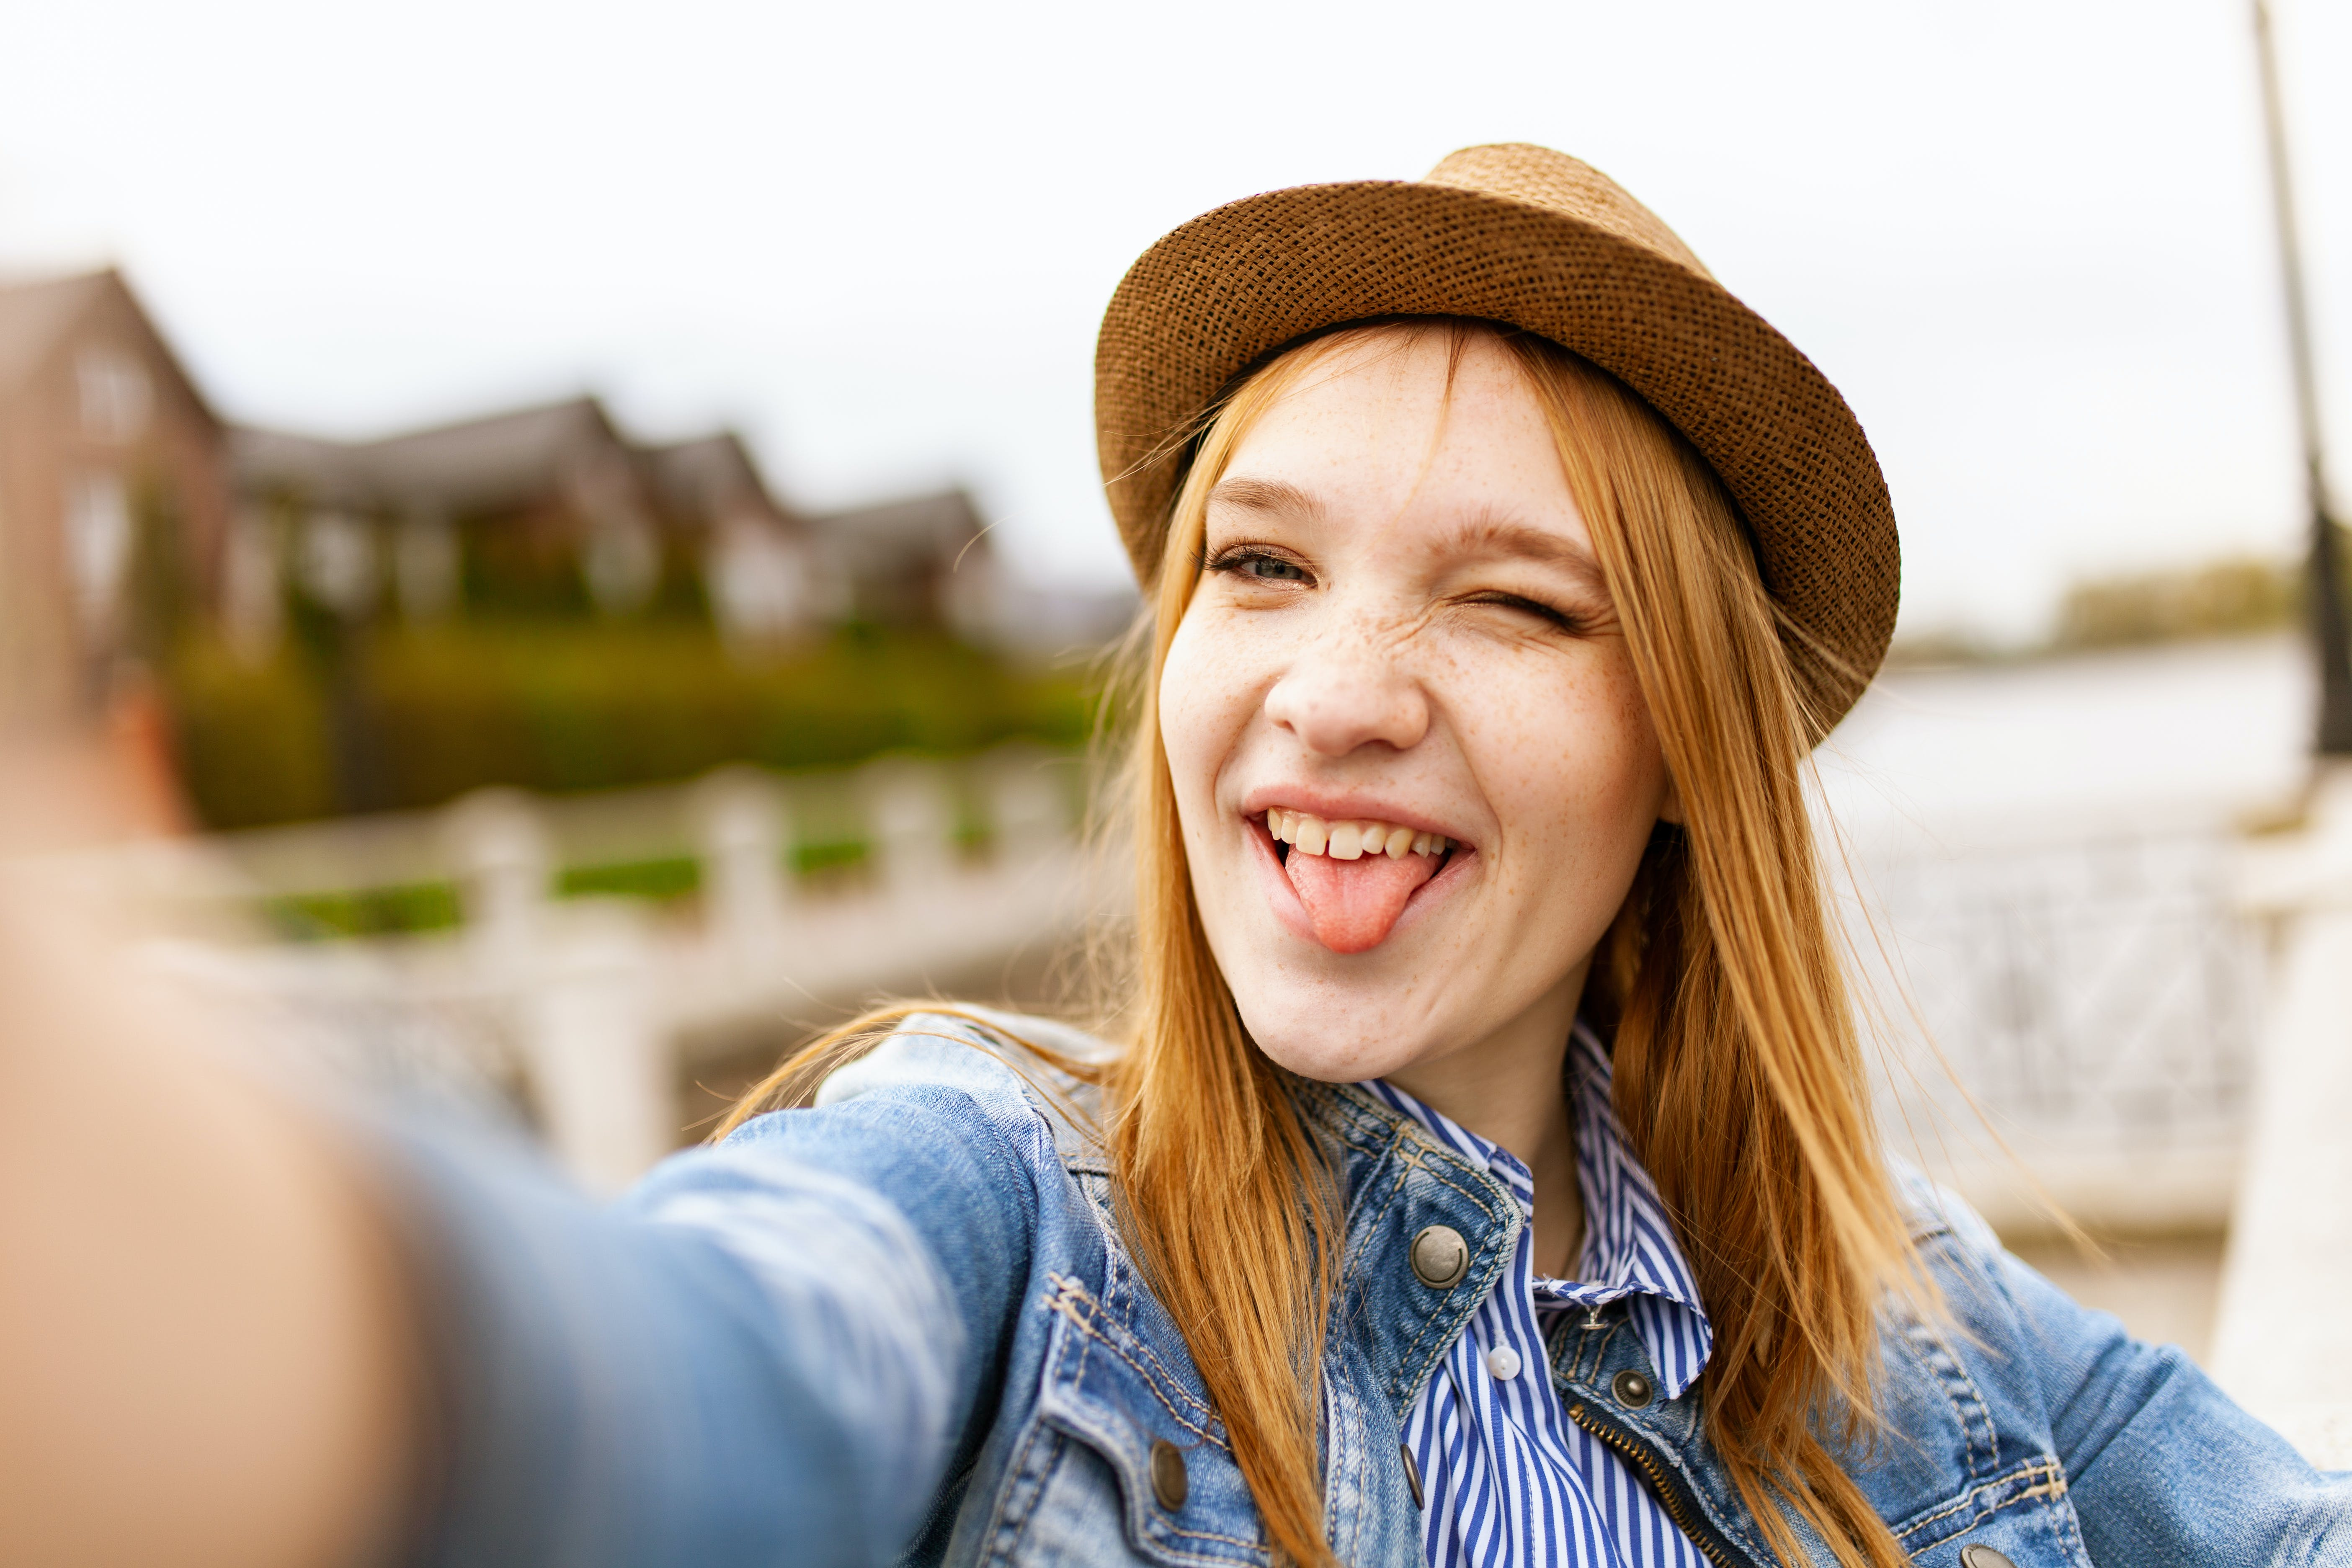 Selective Focus Photography of Woman Taking Photo of Herself